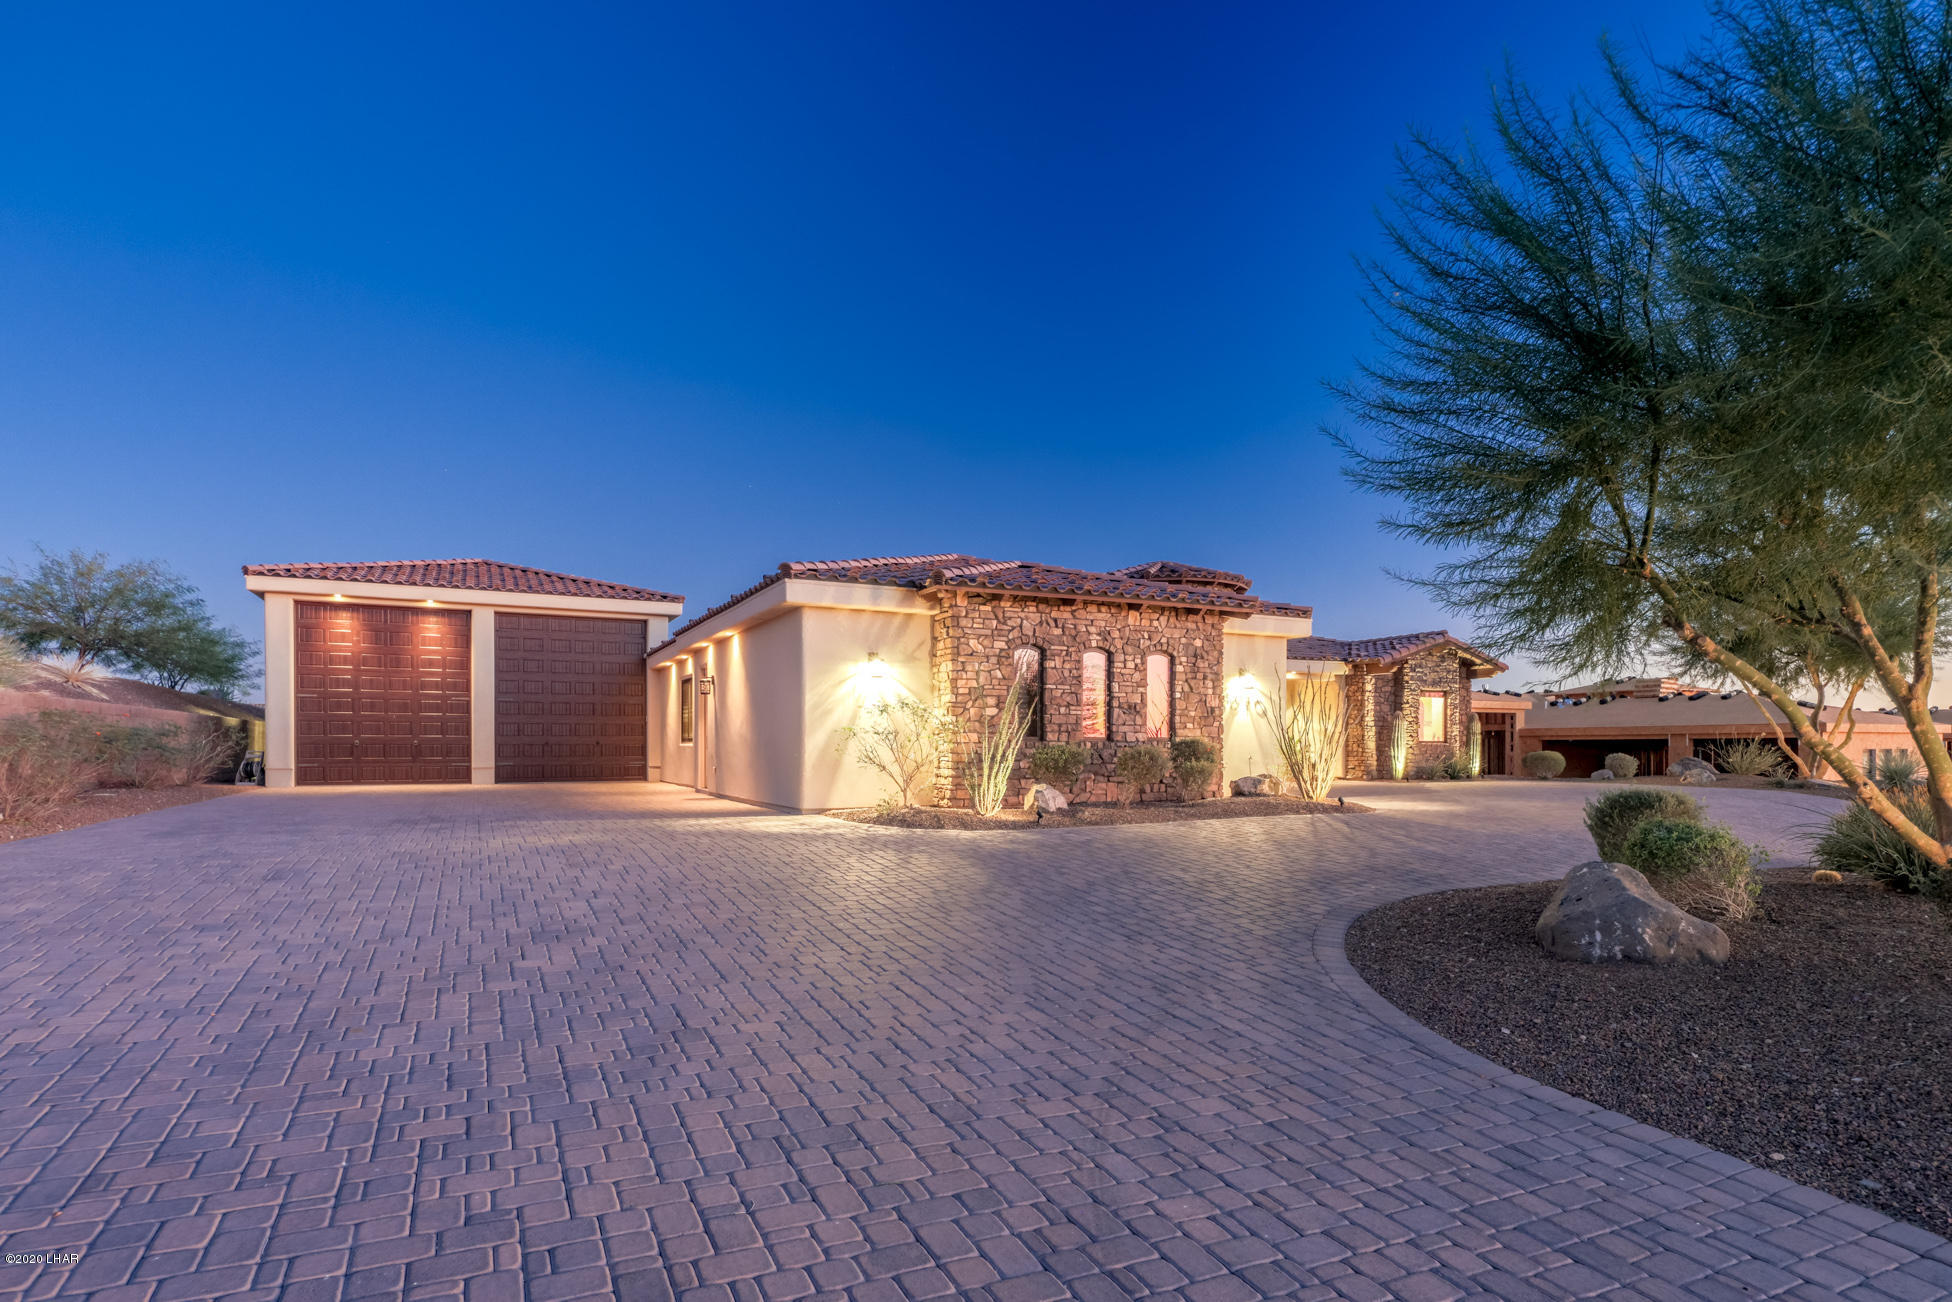 Photo of 5090 Circula De Hacienda, Lake Havasu City, AZ 86406